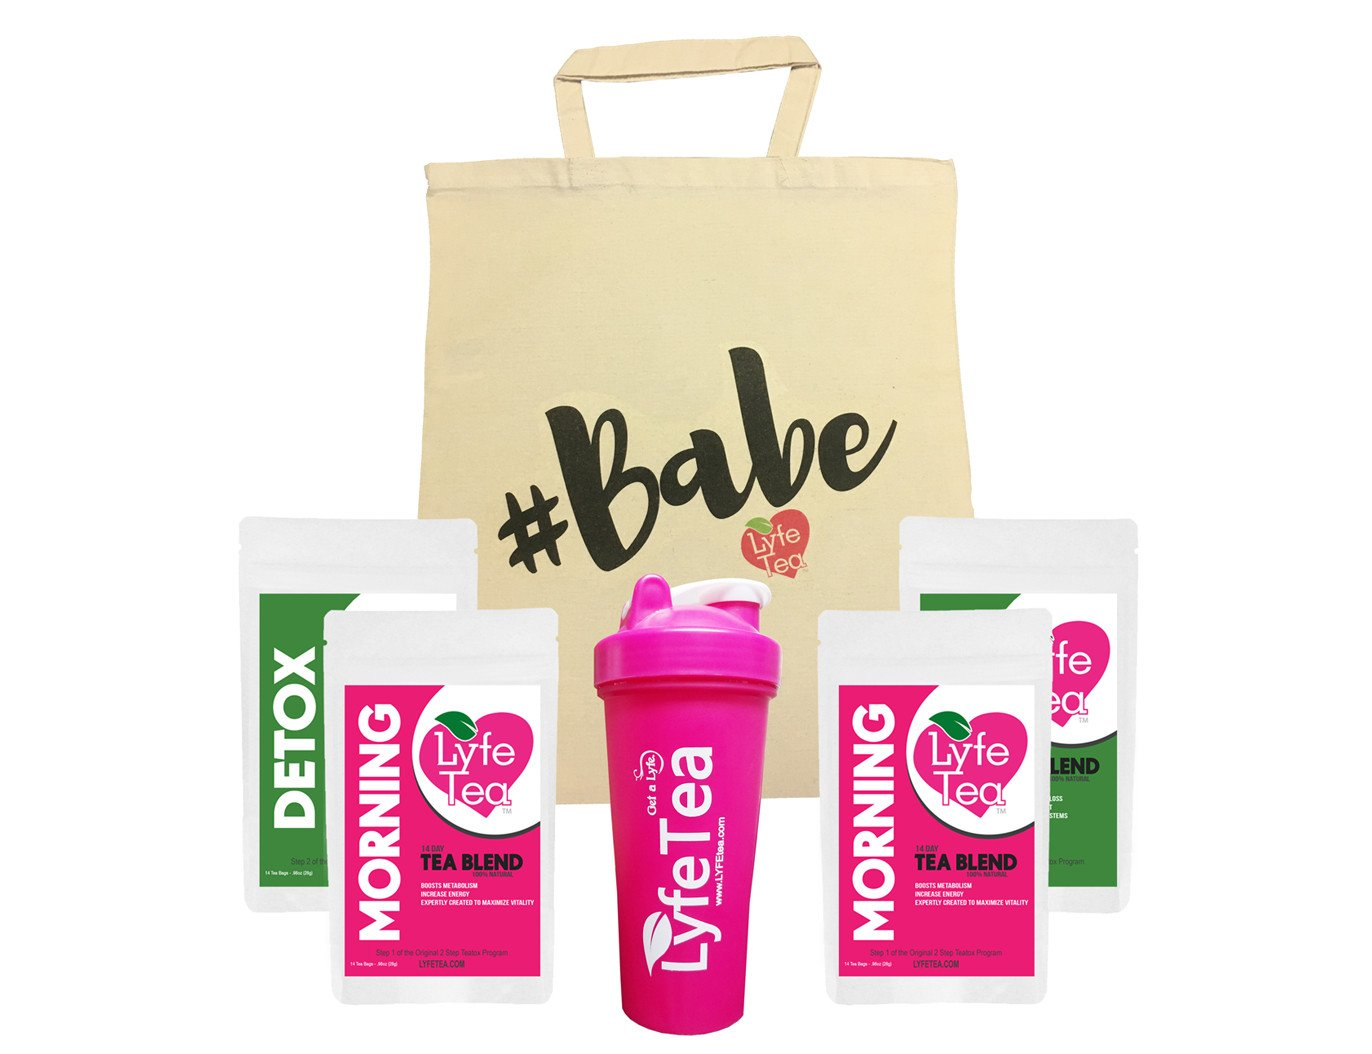 28 Day #Babe Bag Bundle with Shaker Bottle - Teatox Natural Weight Loss - Lyfe Tea Herbal Cleanse Tea Bags - Aid Digestion, Boost Energy, Elevate Mood, Suppress Appetite